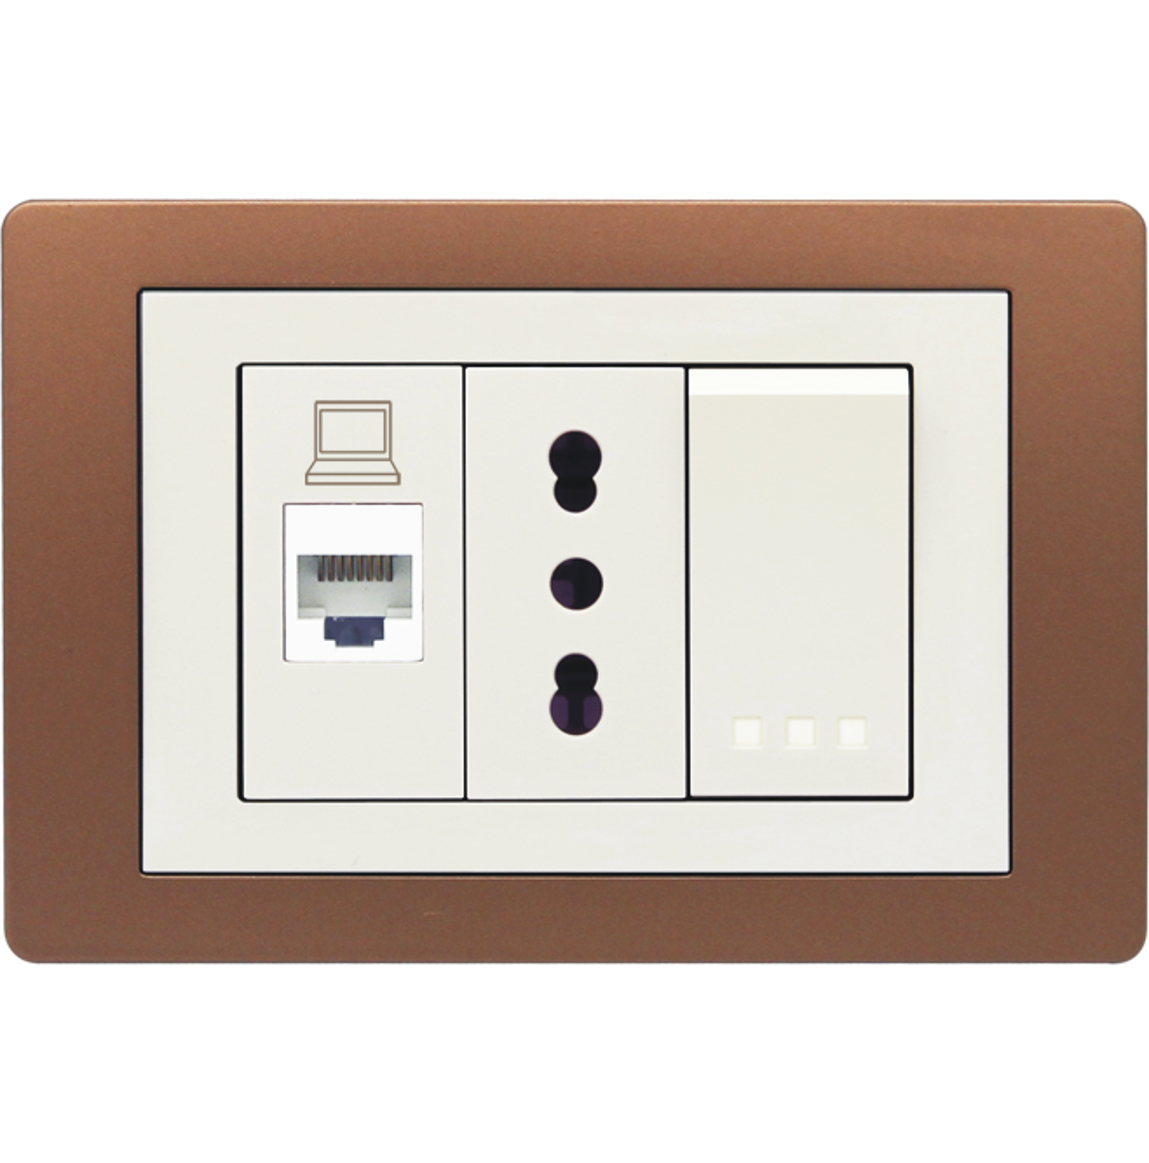 Wall Switch Wall Socket Wall Switches | VPON Wall Switch for Wall Switches And Sockets  150ifm